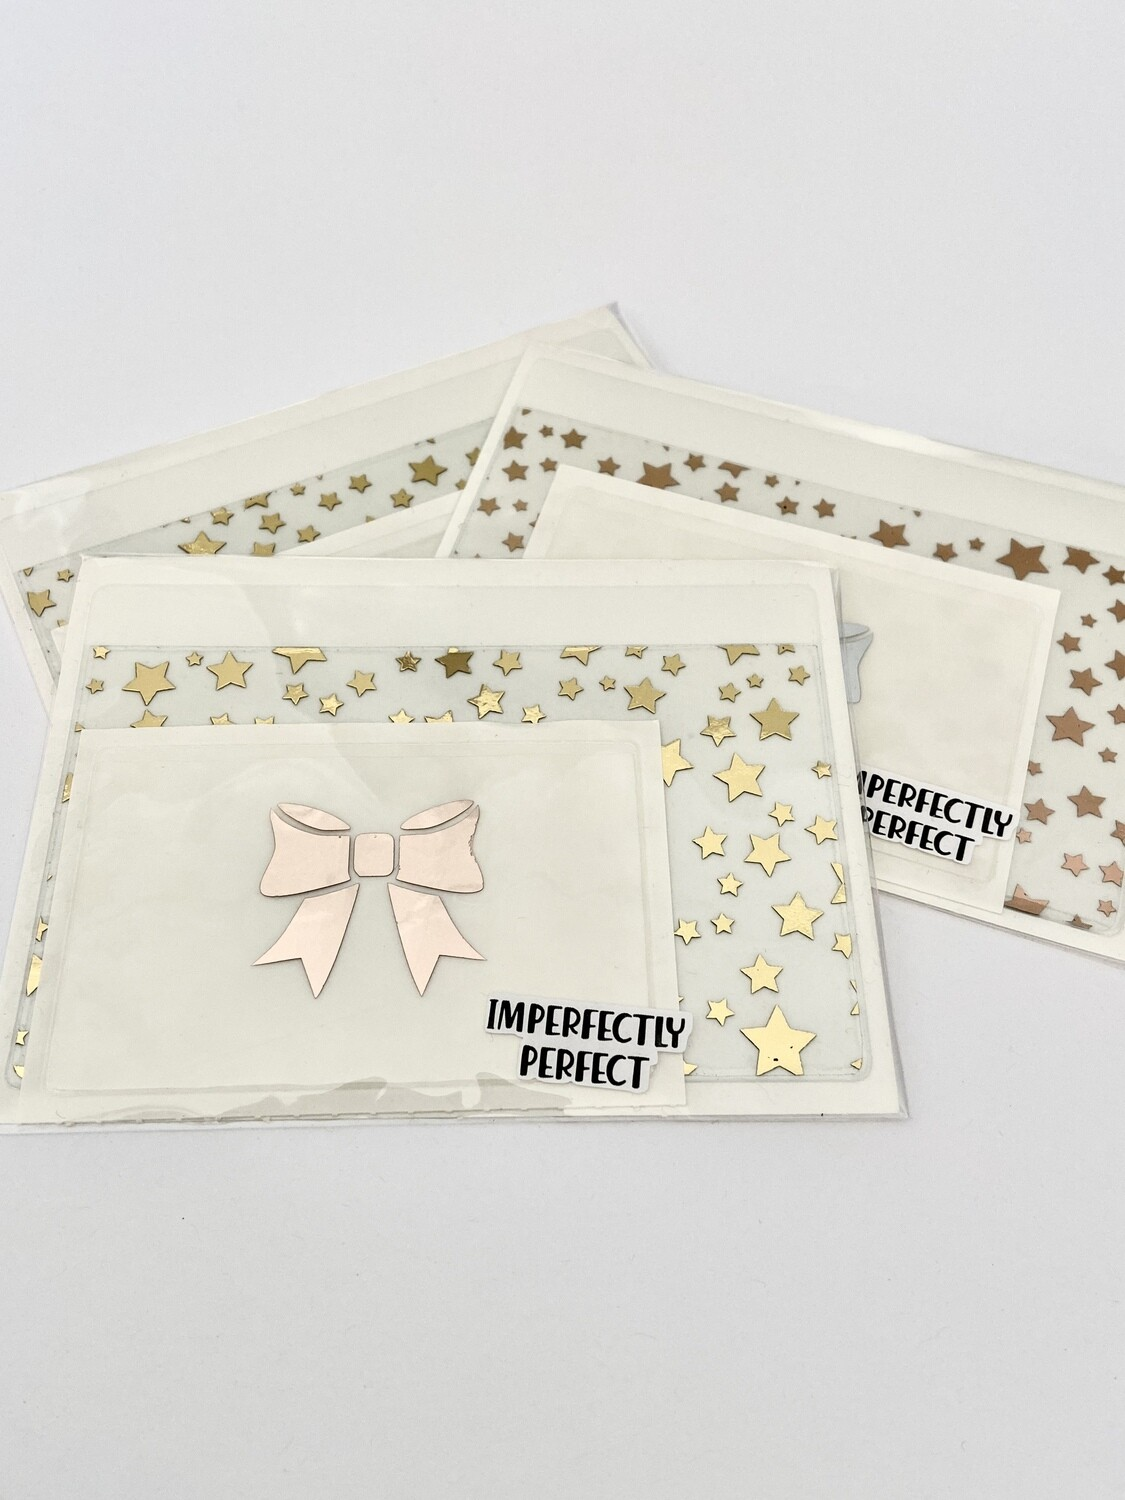 Imperfectly Perfect Adhesive Pockets